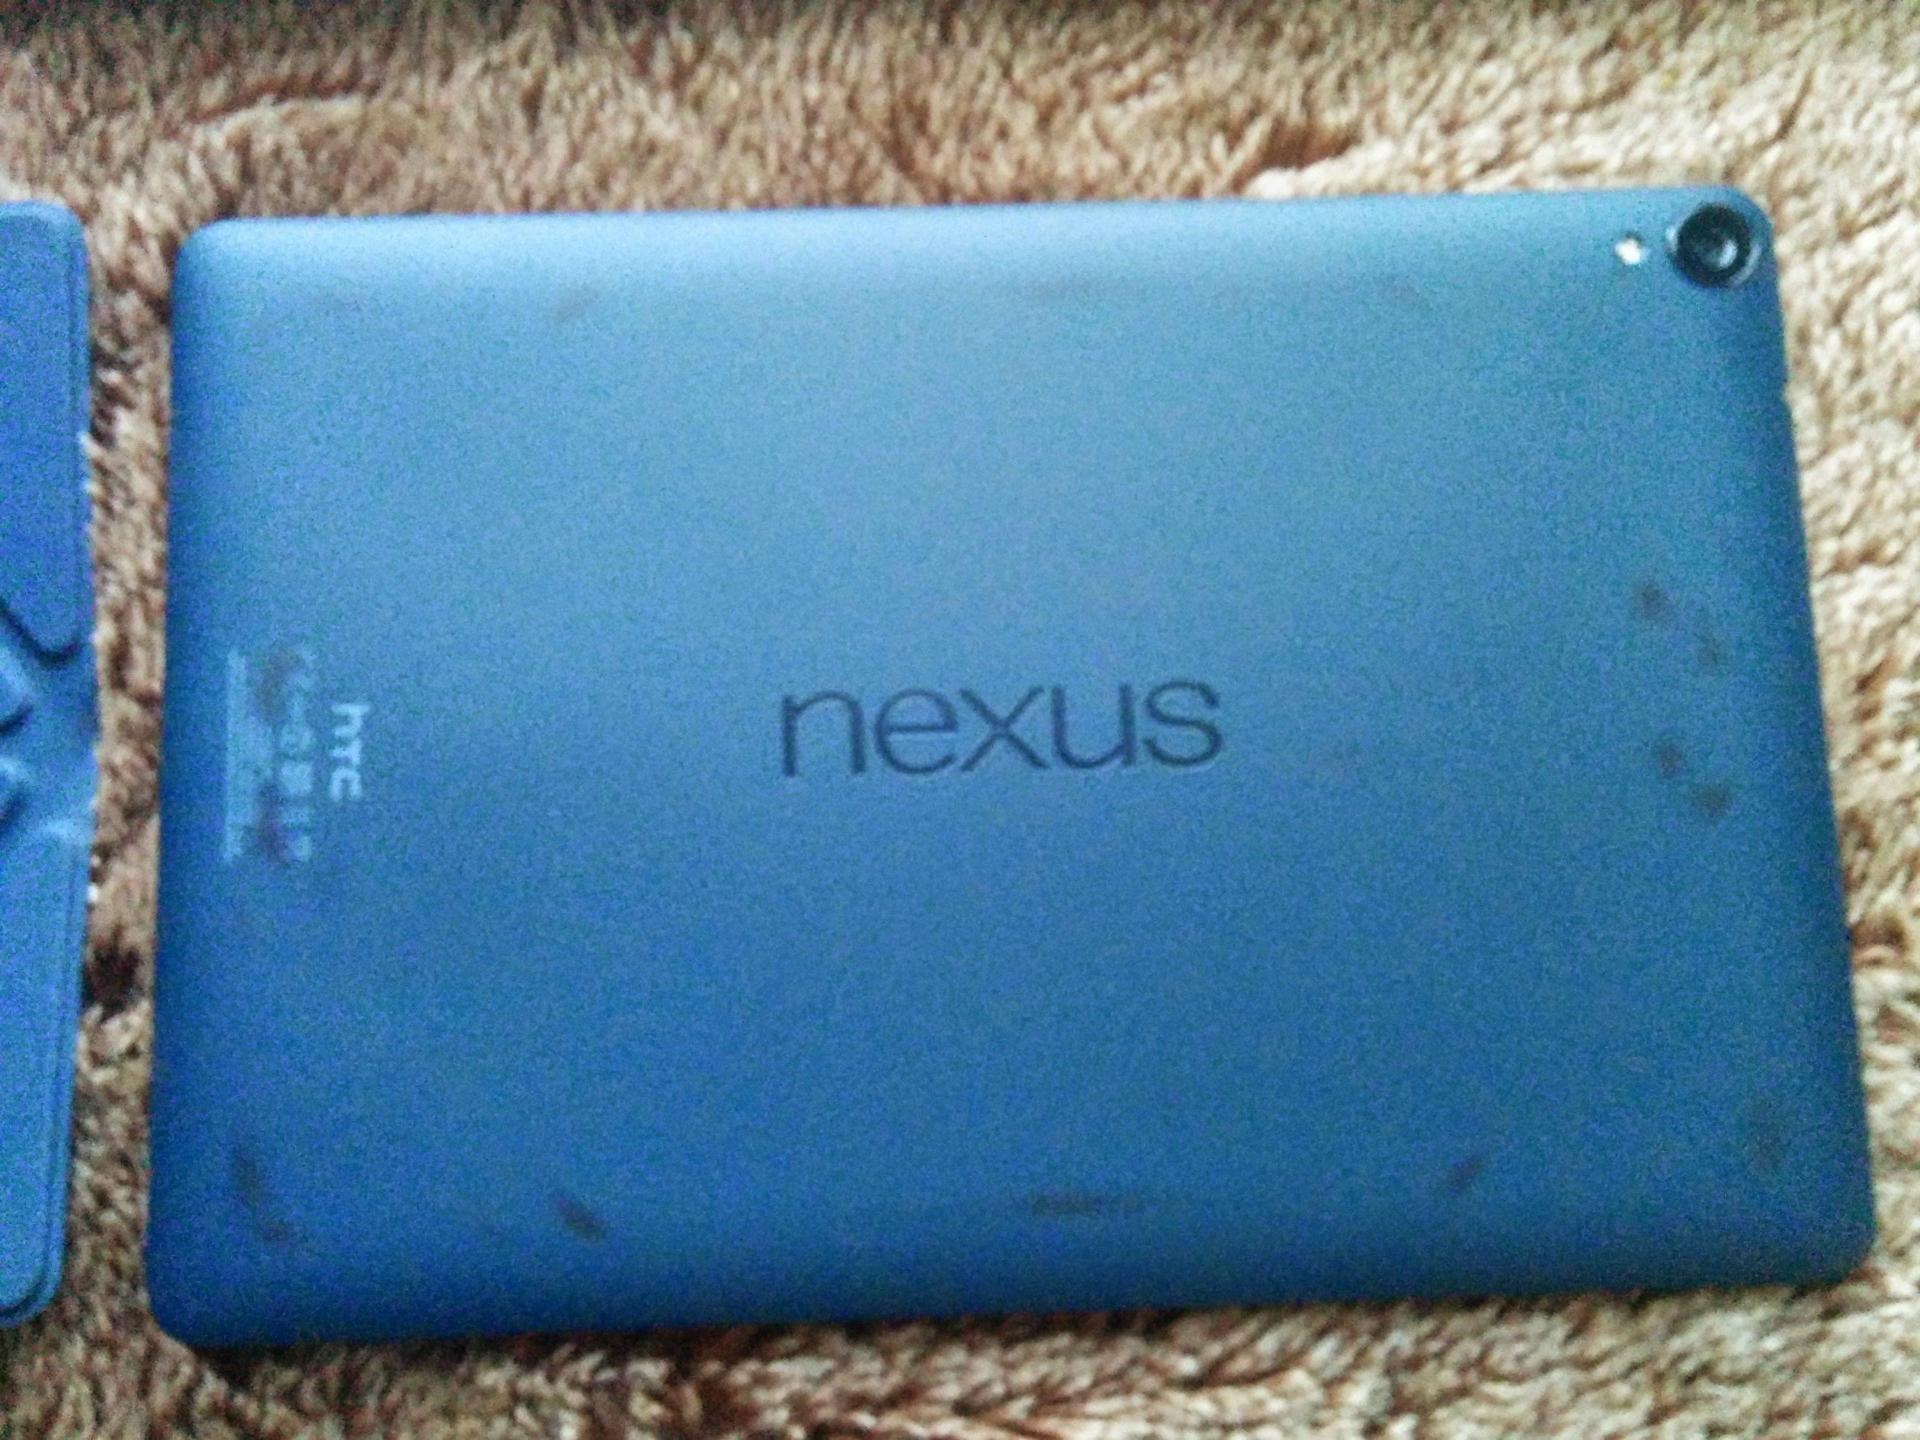 Nexus 9 — the overview from the geek, we stitch, we turn on the indicator of notifications, we increase operating time and many other things